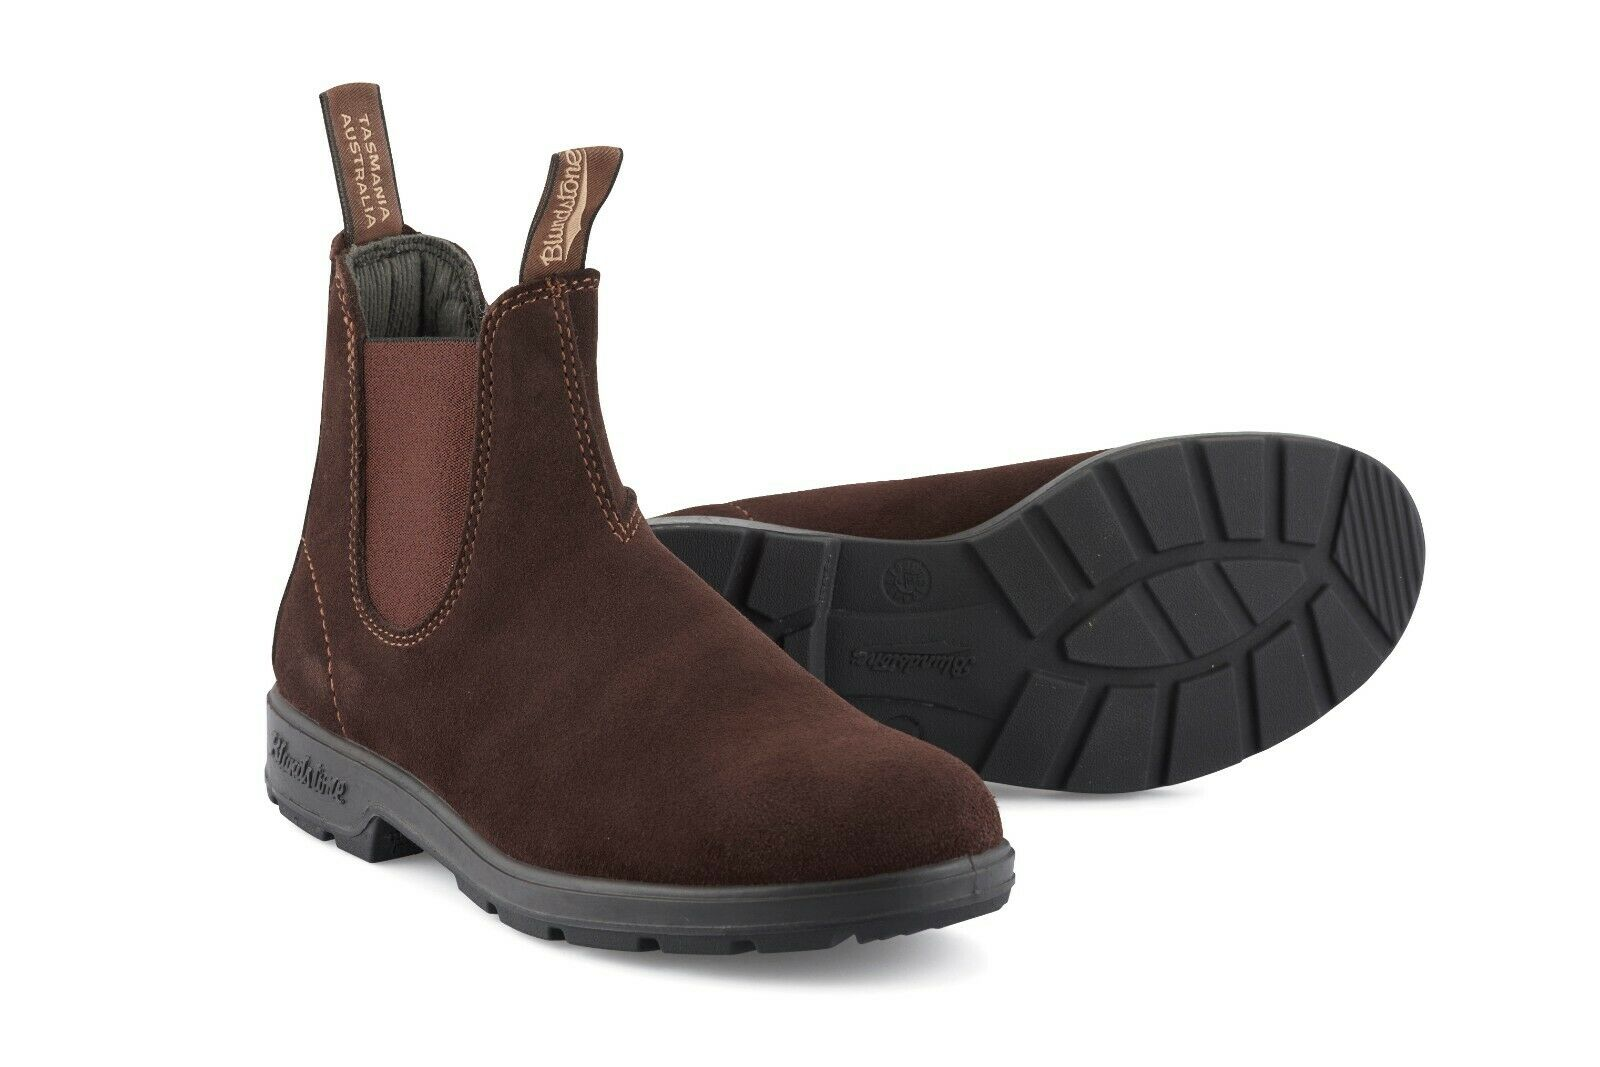 New bluendstone 1458 Brown Suede Unisex Leather Chelsea Boots ALL SIZES